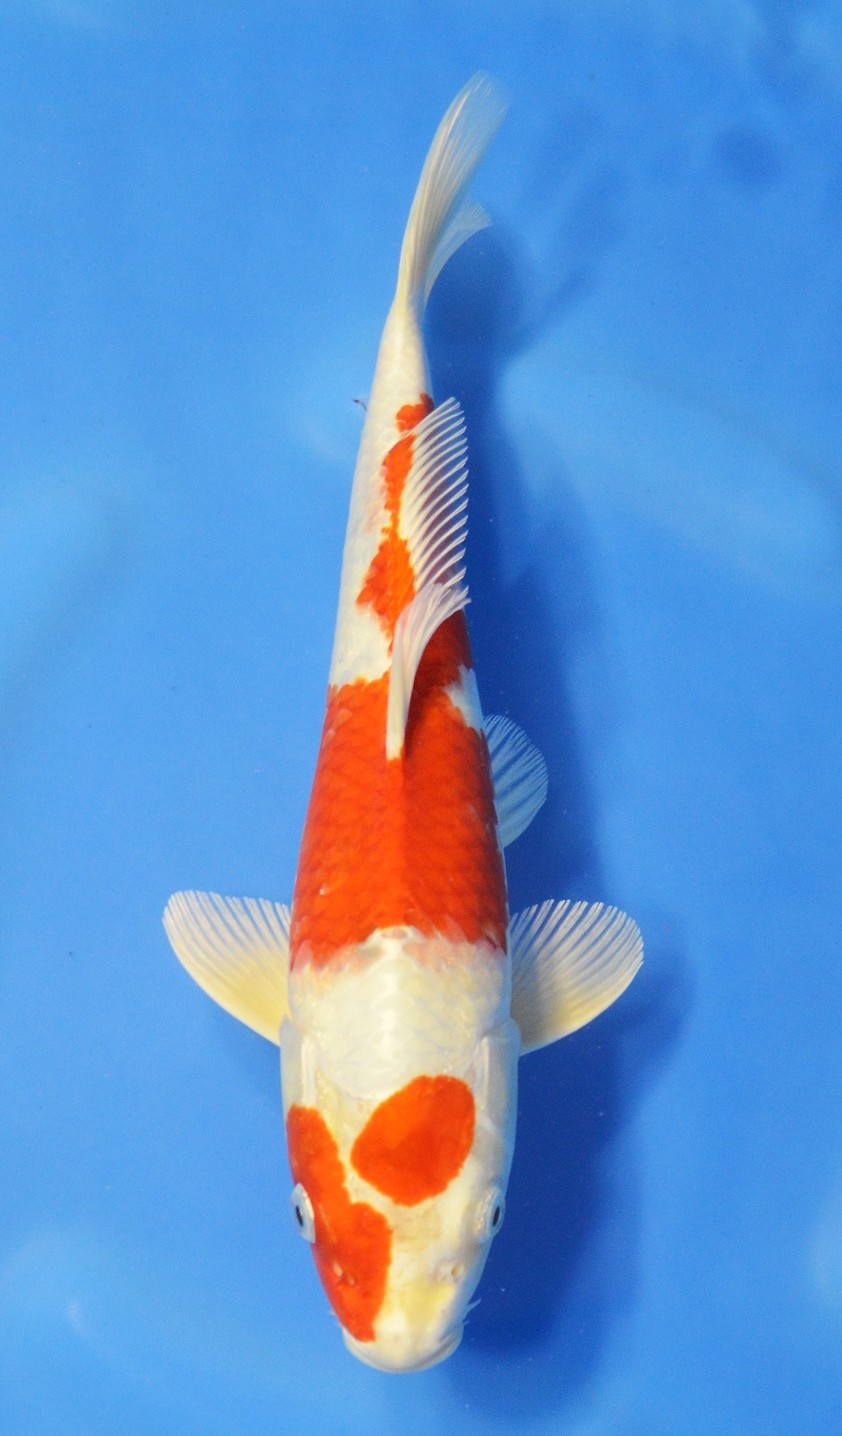 Hariwake sick grand koi llc for Koi hariwake